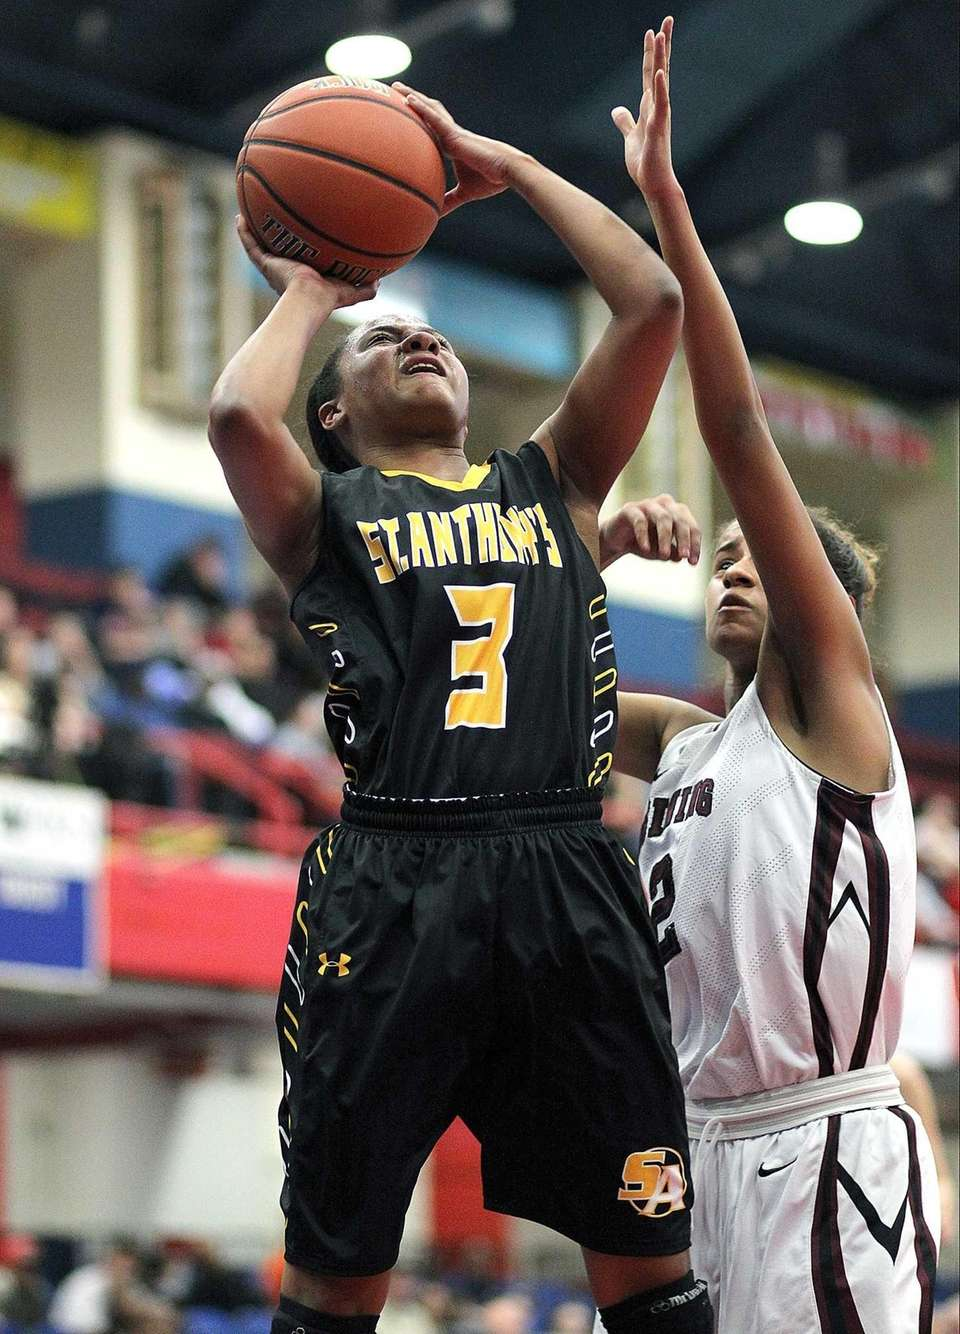 St. Anthony's Charise Wilson shoots underneath against Ossining